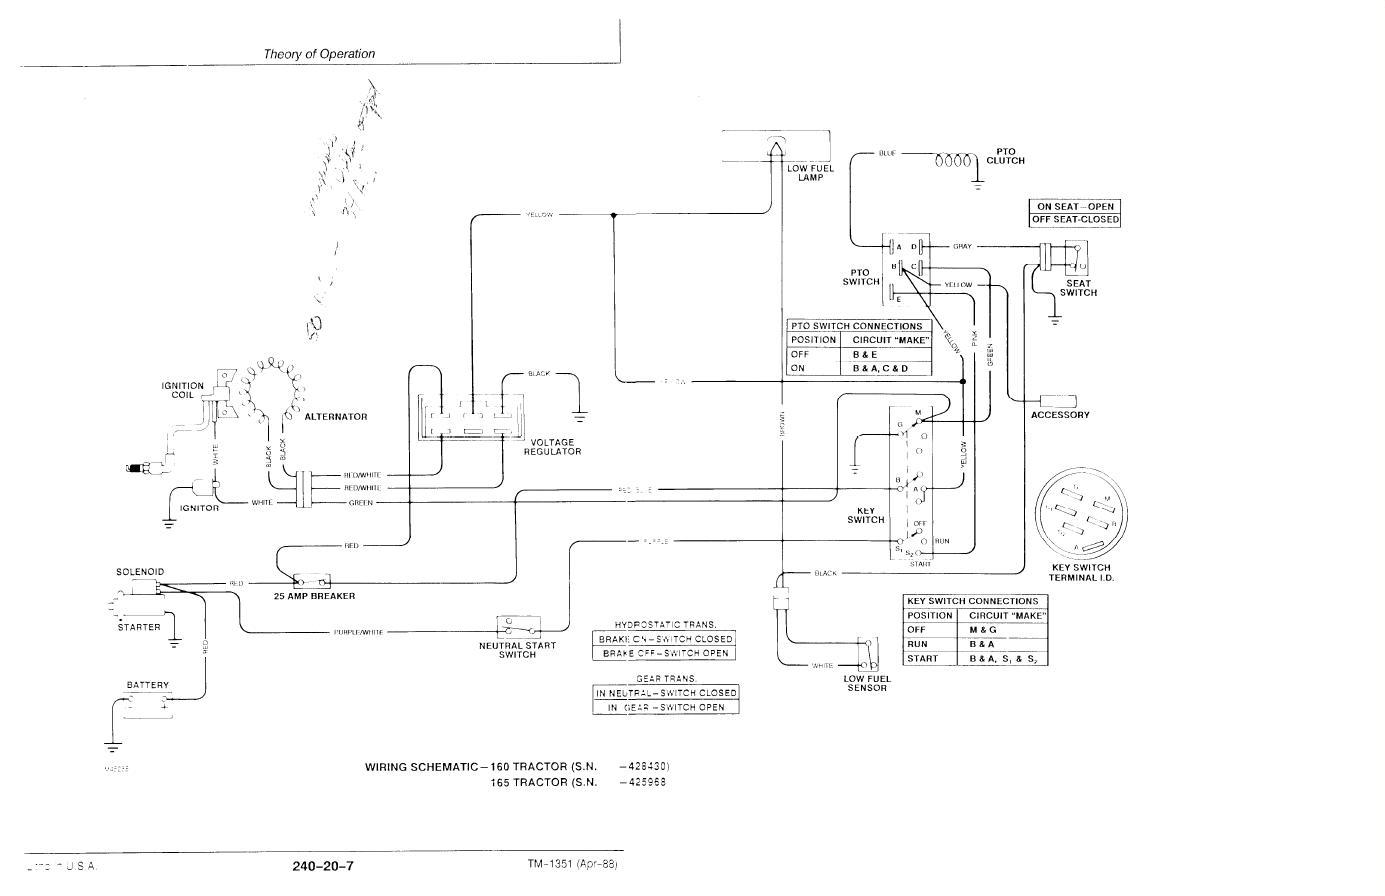 stx wiring schematic wiring diagram john deere stx38 parts diagram auto wiring schematic